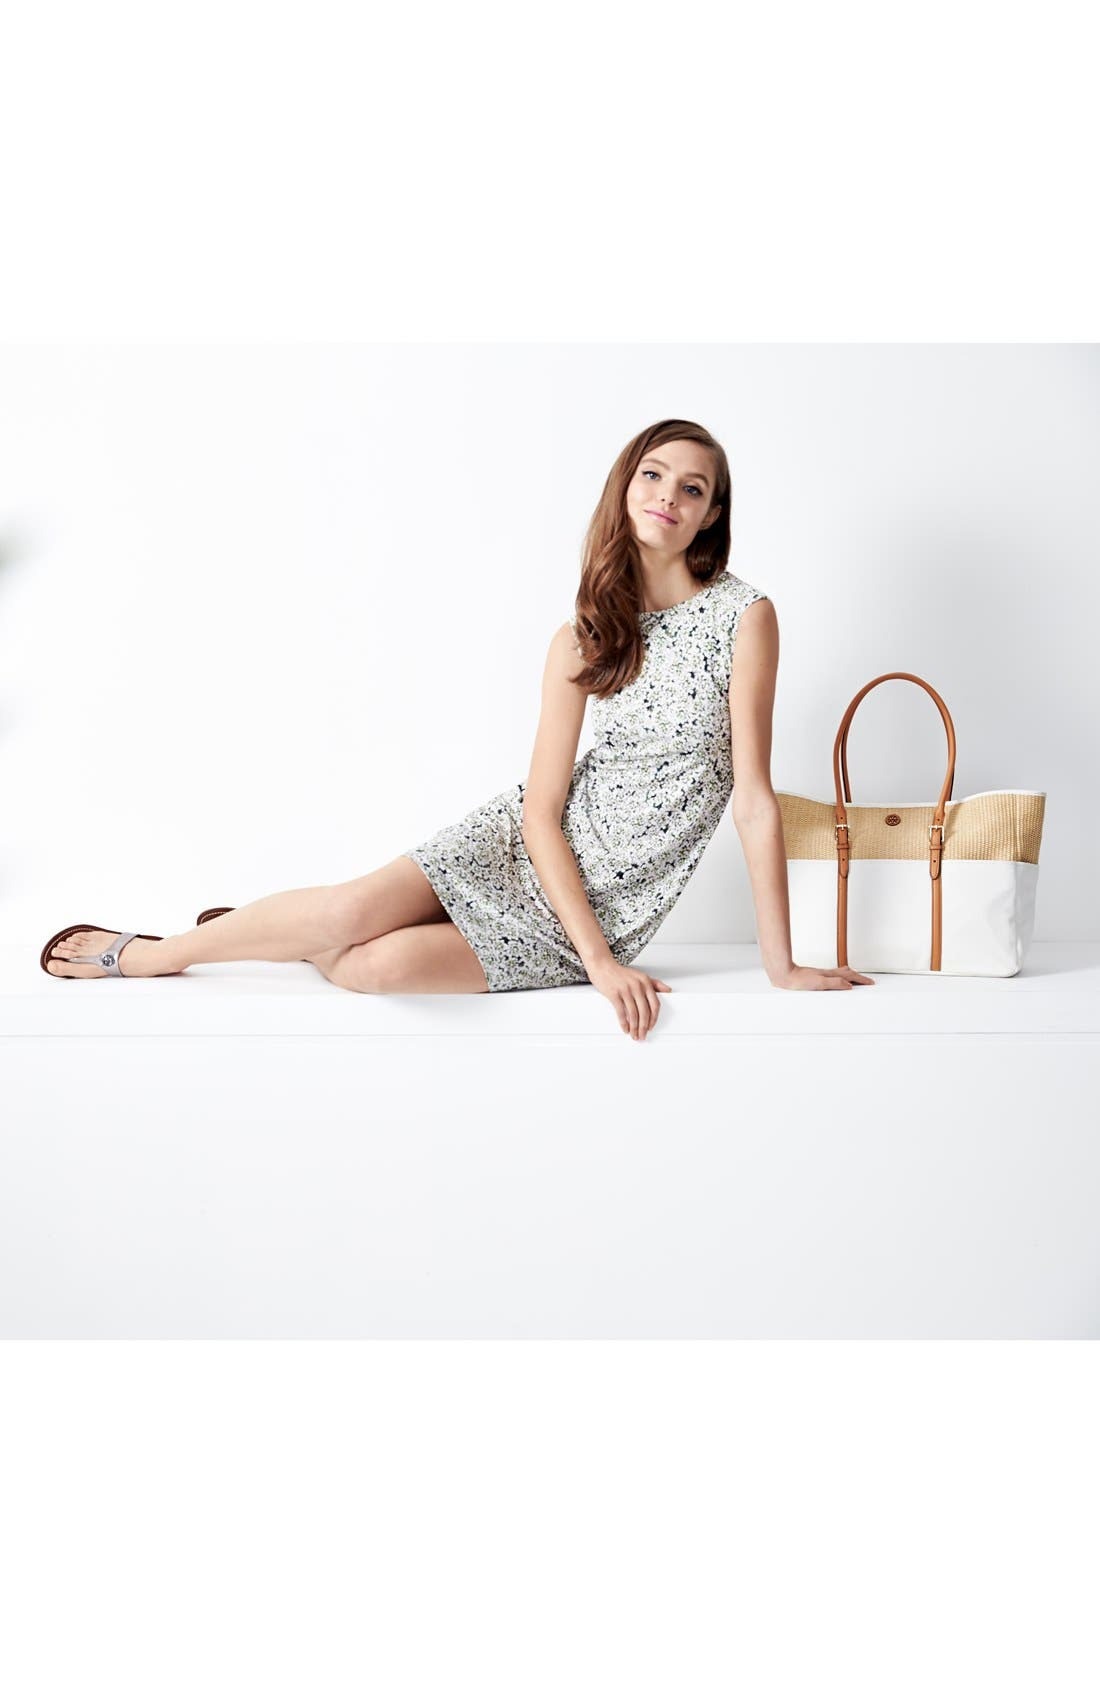 Alternate Image 1 Selected - Tory Burch Dress & Accessories